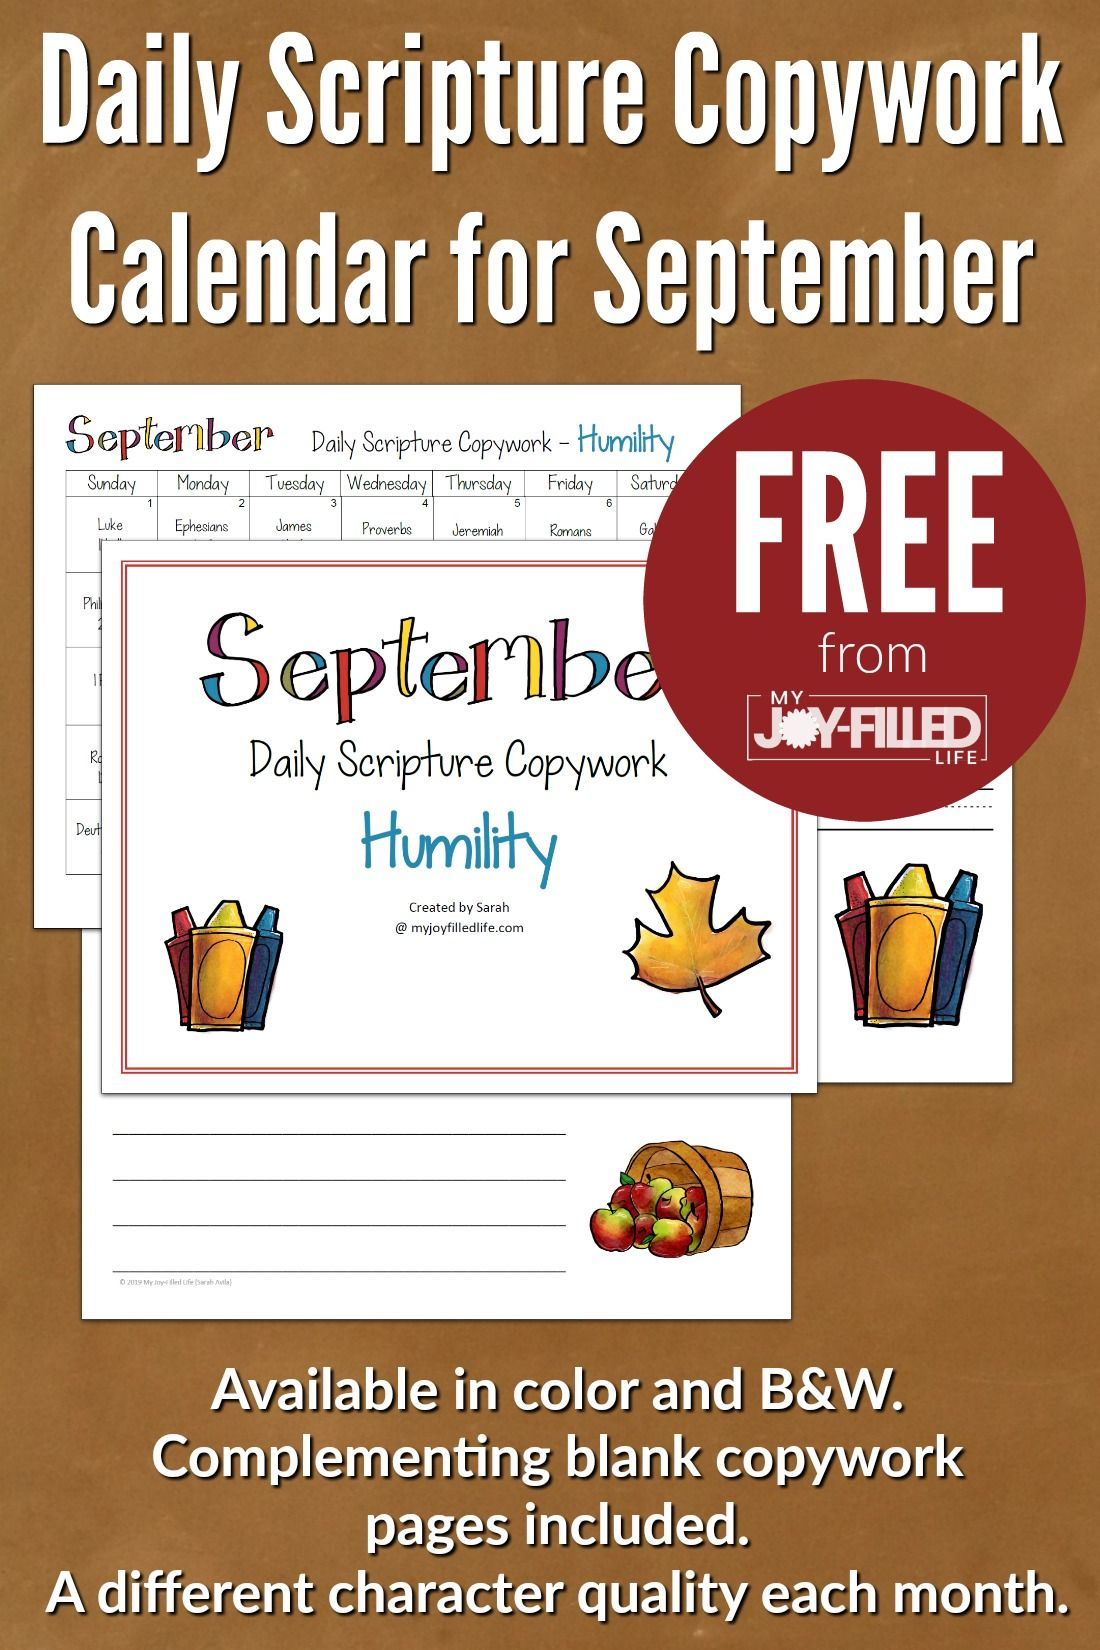 Daily Scripture Copywork Calendar For September